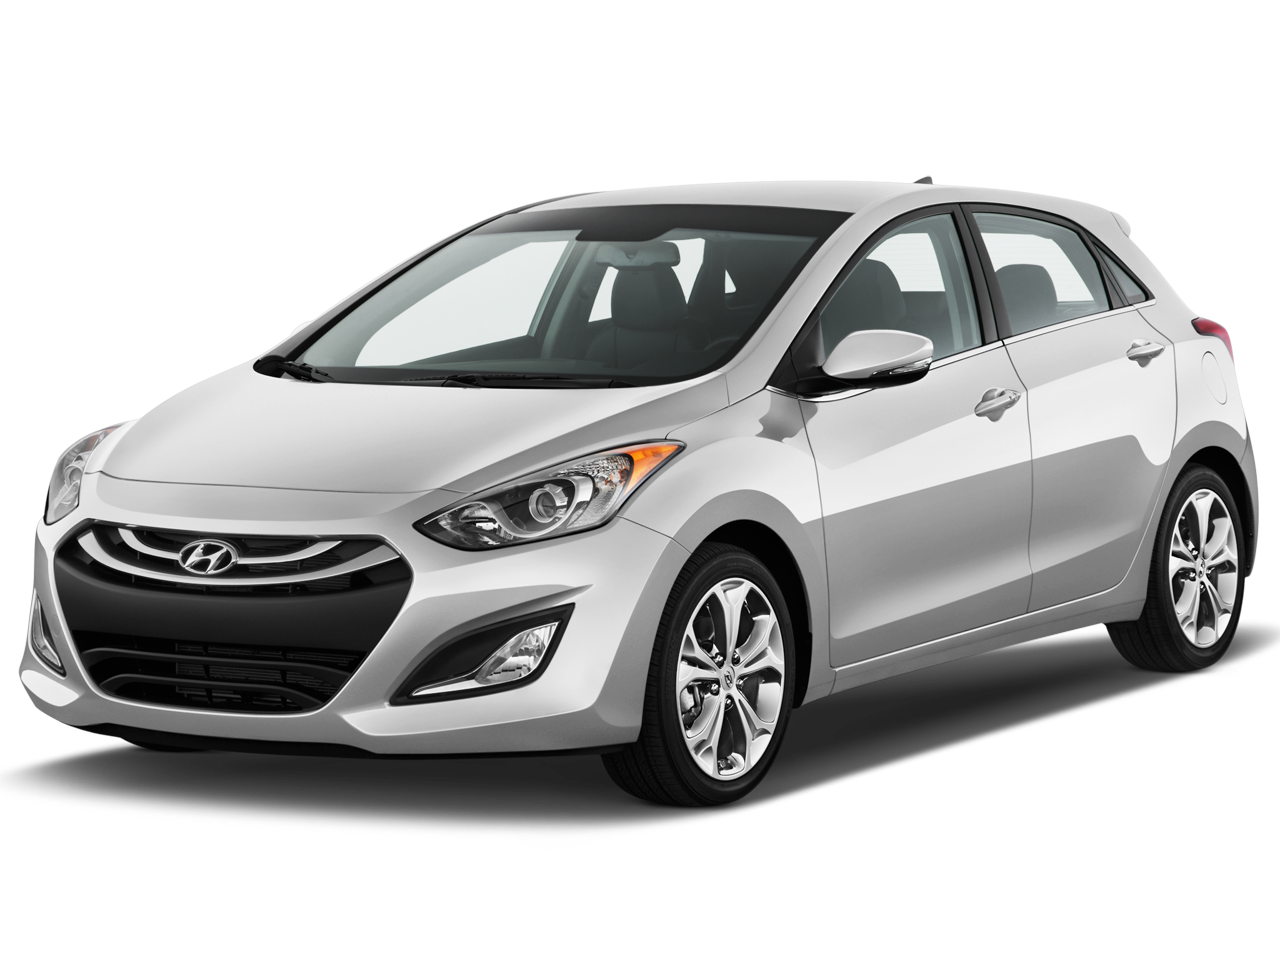 used 2015 hyundai elantra sport near san antonio tx. Black Bedroom Furniture Sets. Home Design Ideas